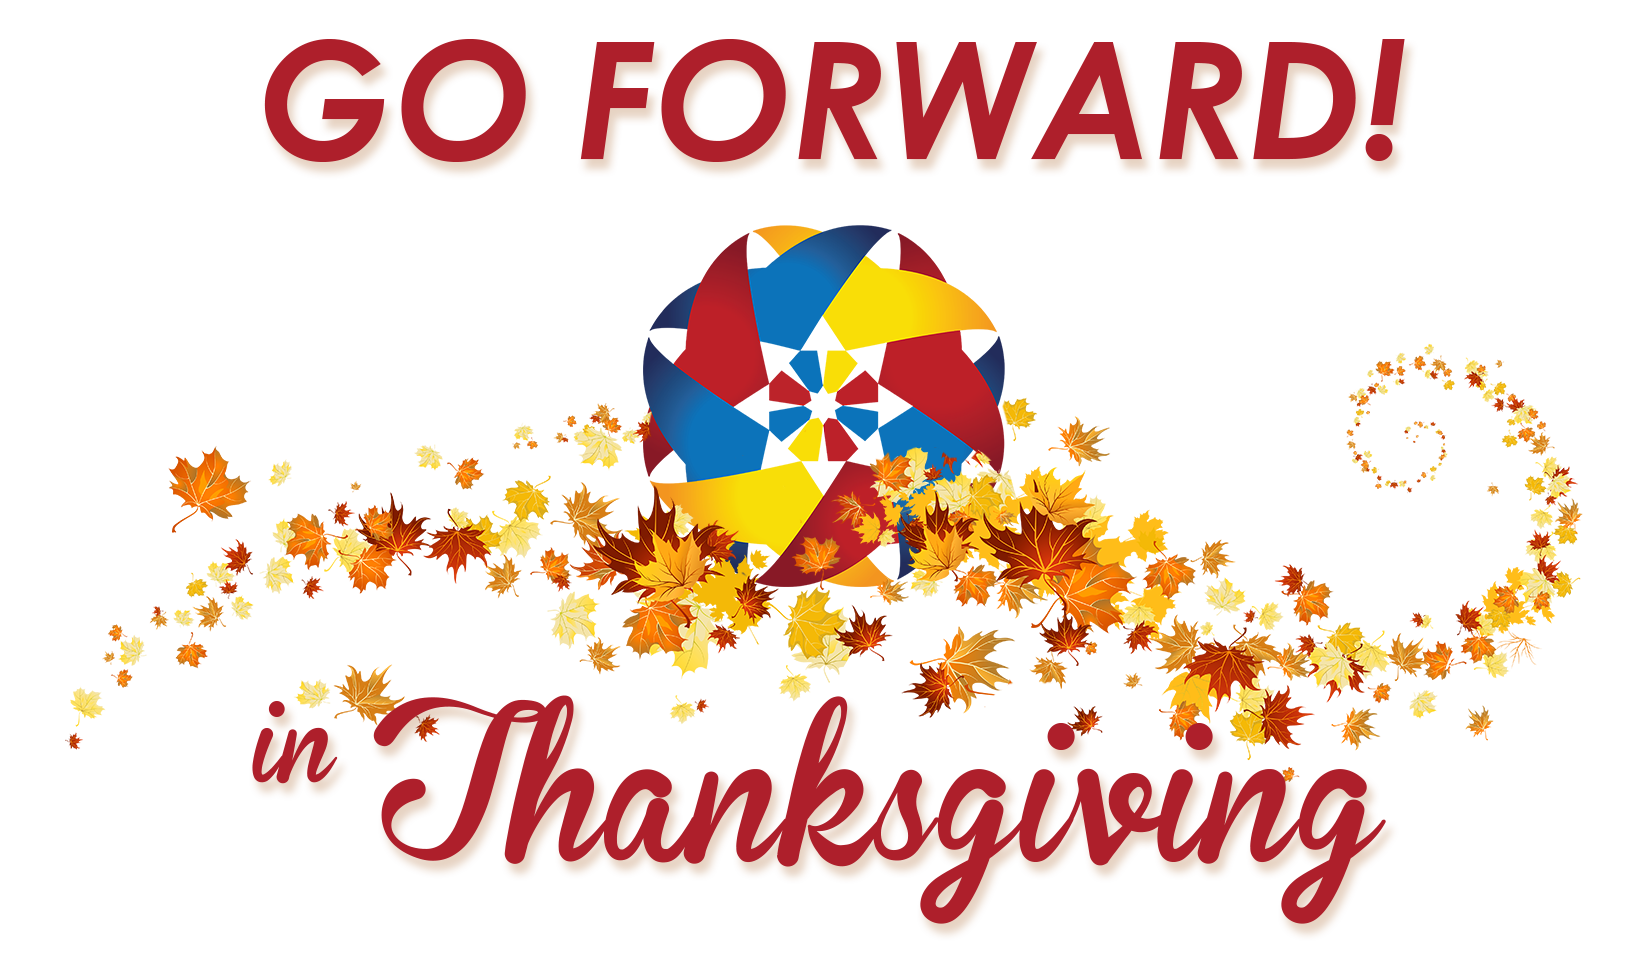 Scriptures about thanksgiving clipart graphic download Thanksgiving Resources – Salvation Factory graphic download